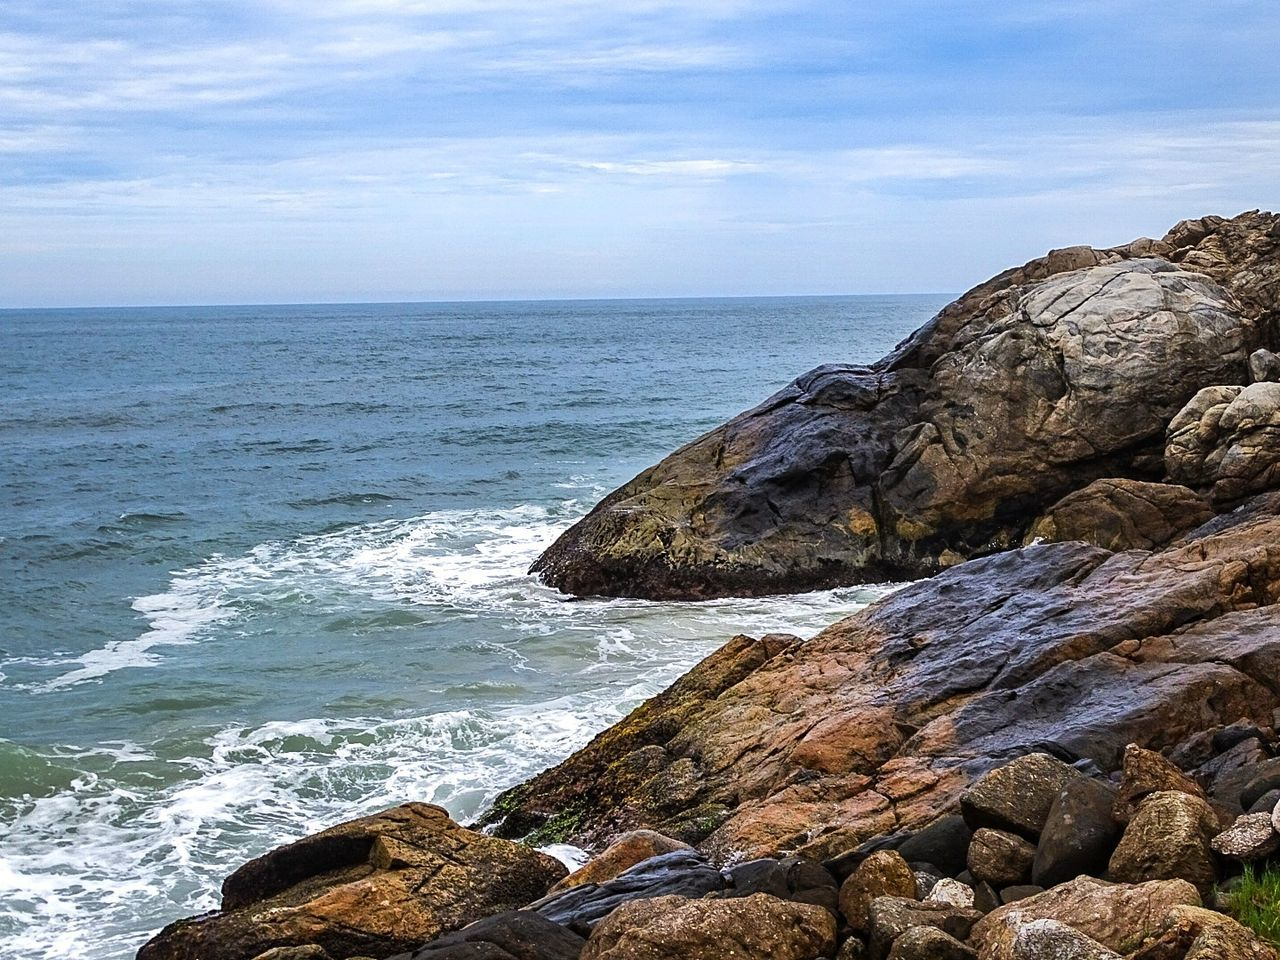 Sea Beach Scenics Awe Landscape Coastal Feature Nature Horizon Over Water Idyllic Rock - Object Sand Wave Outdoors Beauty In Nature No People Day Water Sky Morrodasaranhas Florianópolis Tranquil Scene Beauty In Nature Brazil